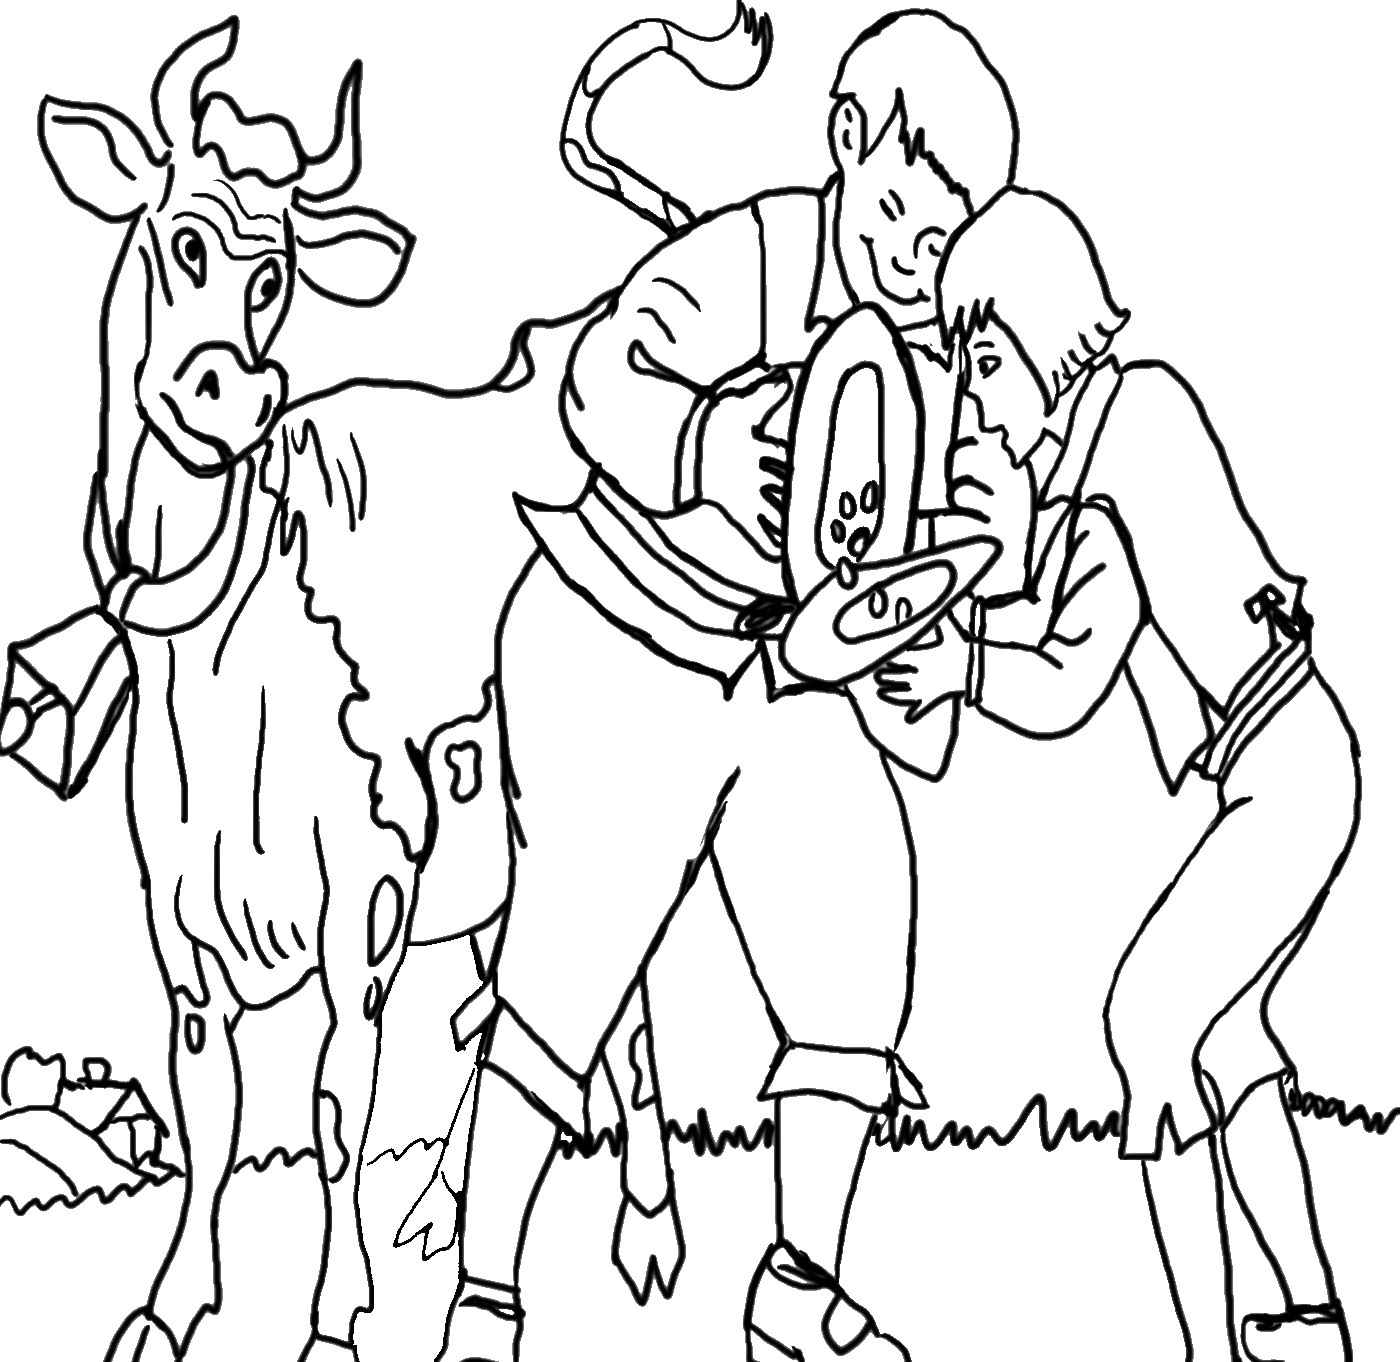 Jack Beanstalk Coloring Pages